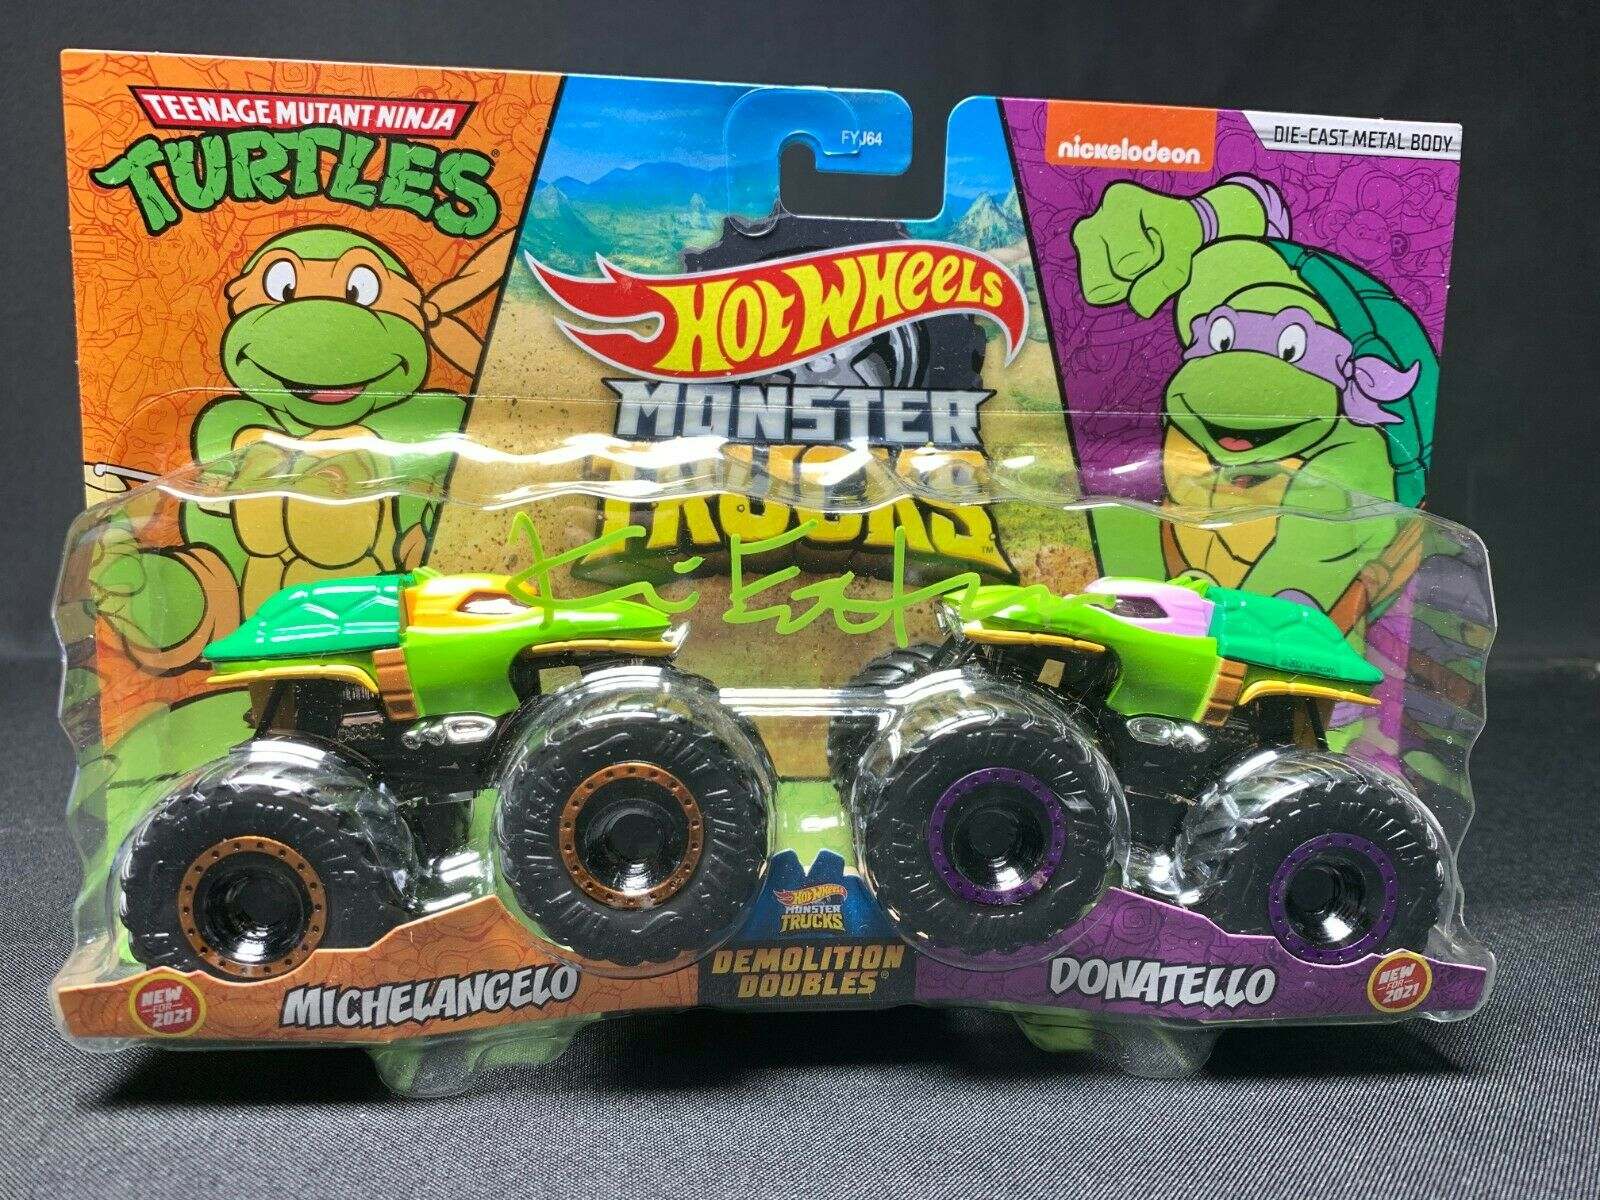 Kevin Eastman Signed Ninja Turtles Hot Wheels Truck PSA 9A66852 Donatello - $149.96